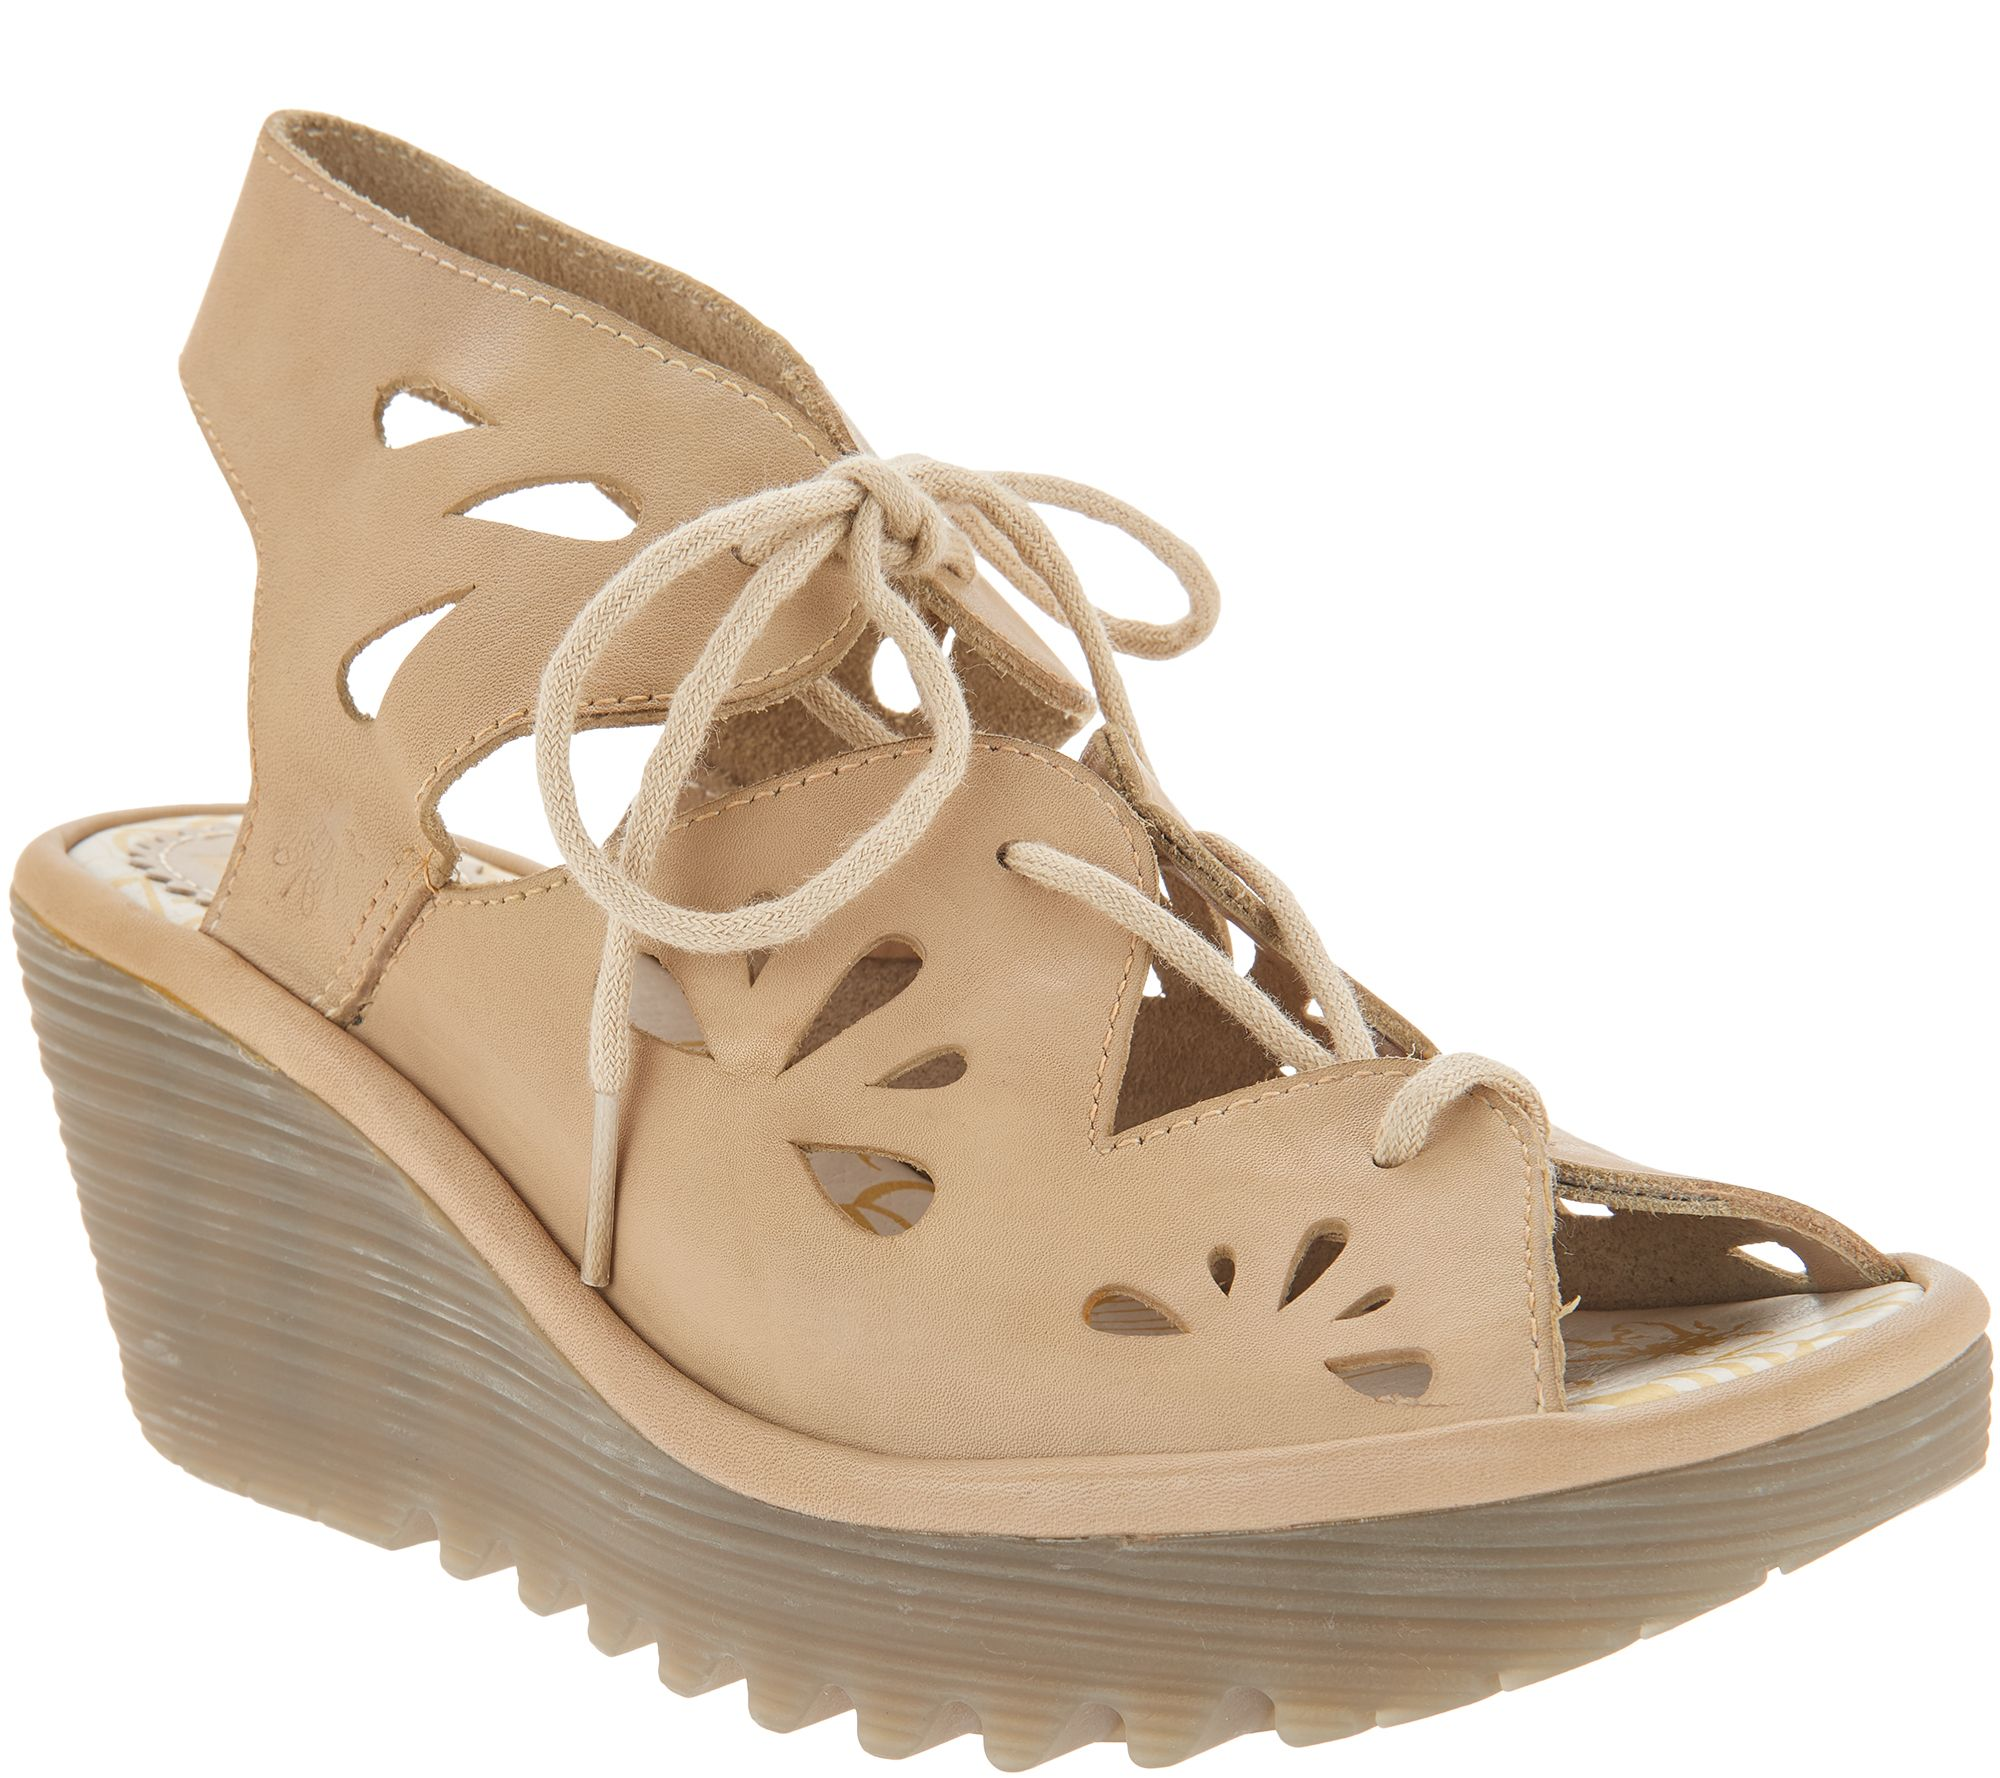 7ea0d81974a FLY London Leather Lace Up Wedges - Yote - Page 1 — QVC.com